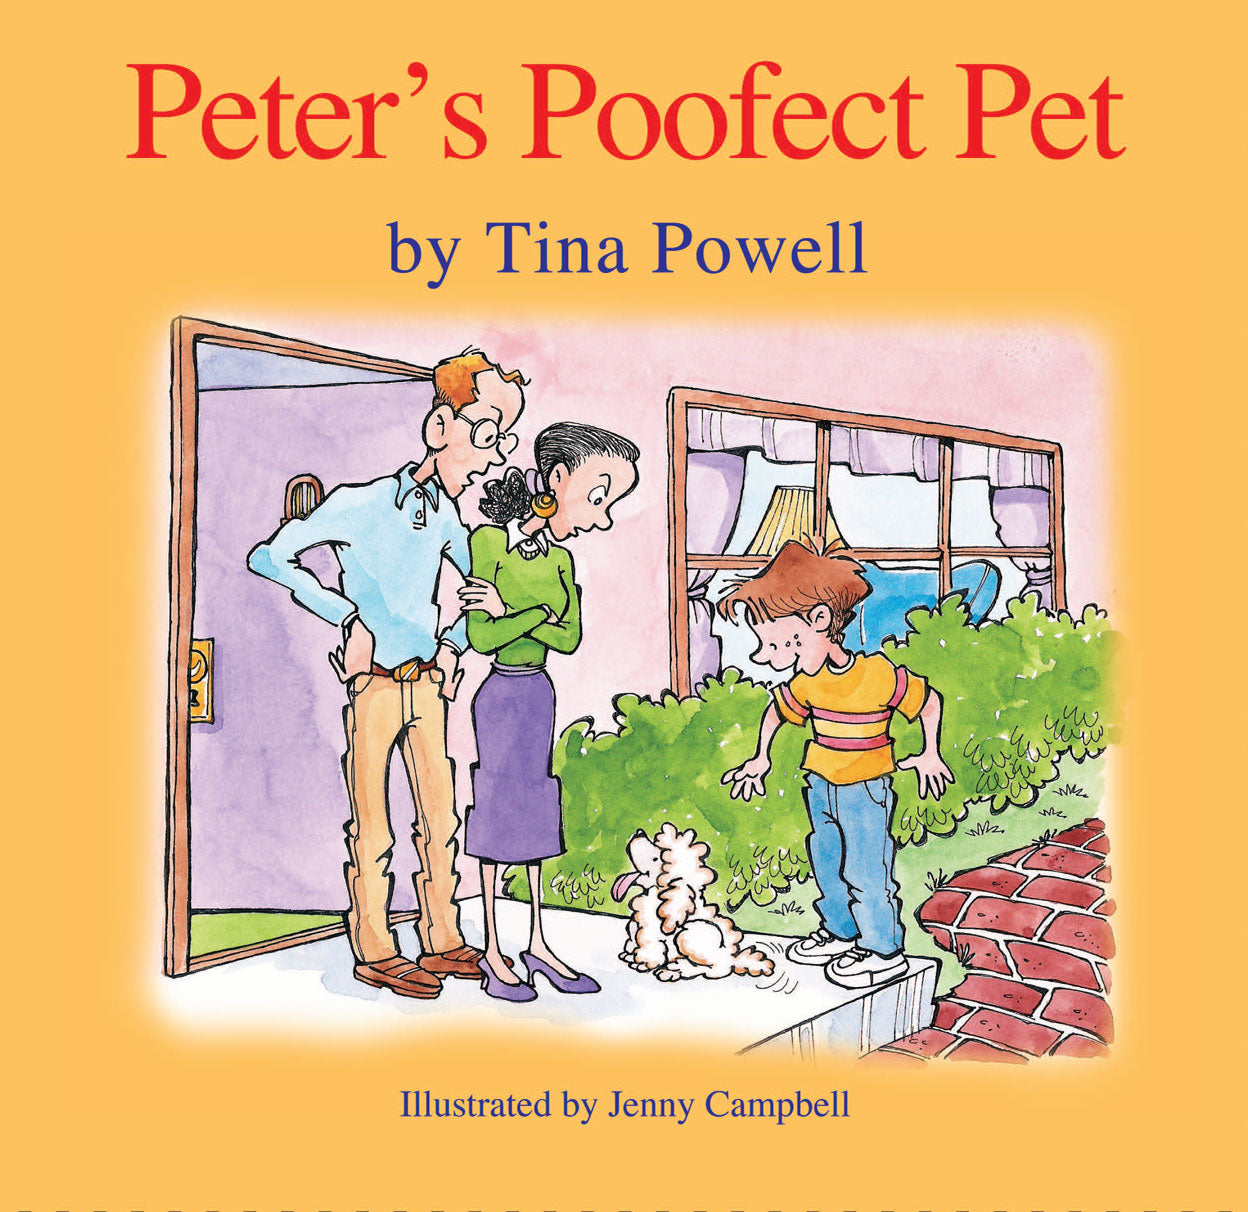 Peter's Poofect Pet Book Cover - Children's Author Tina Powell